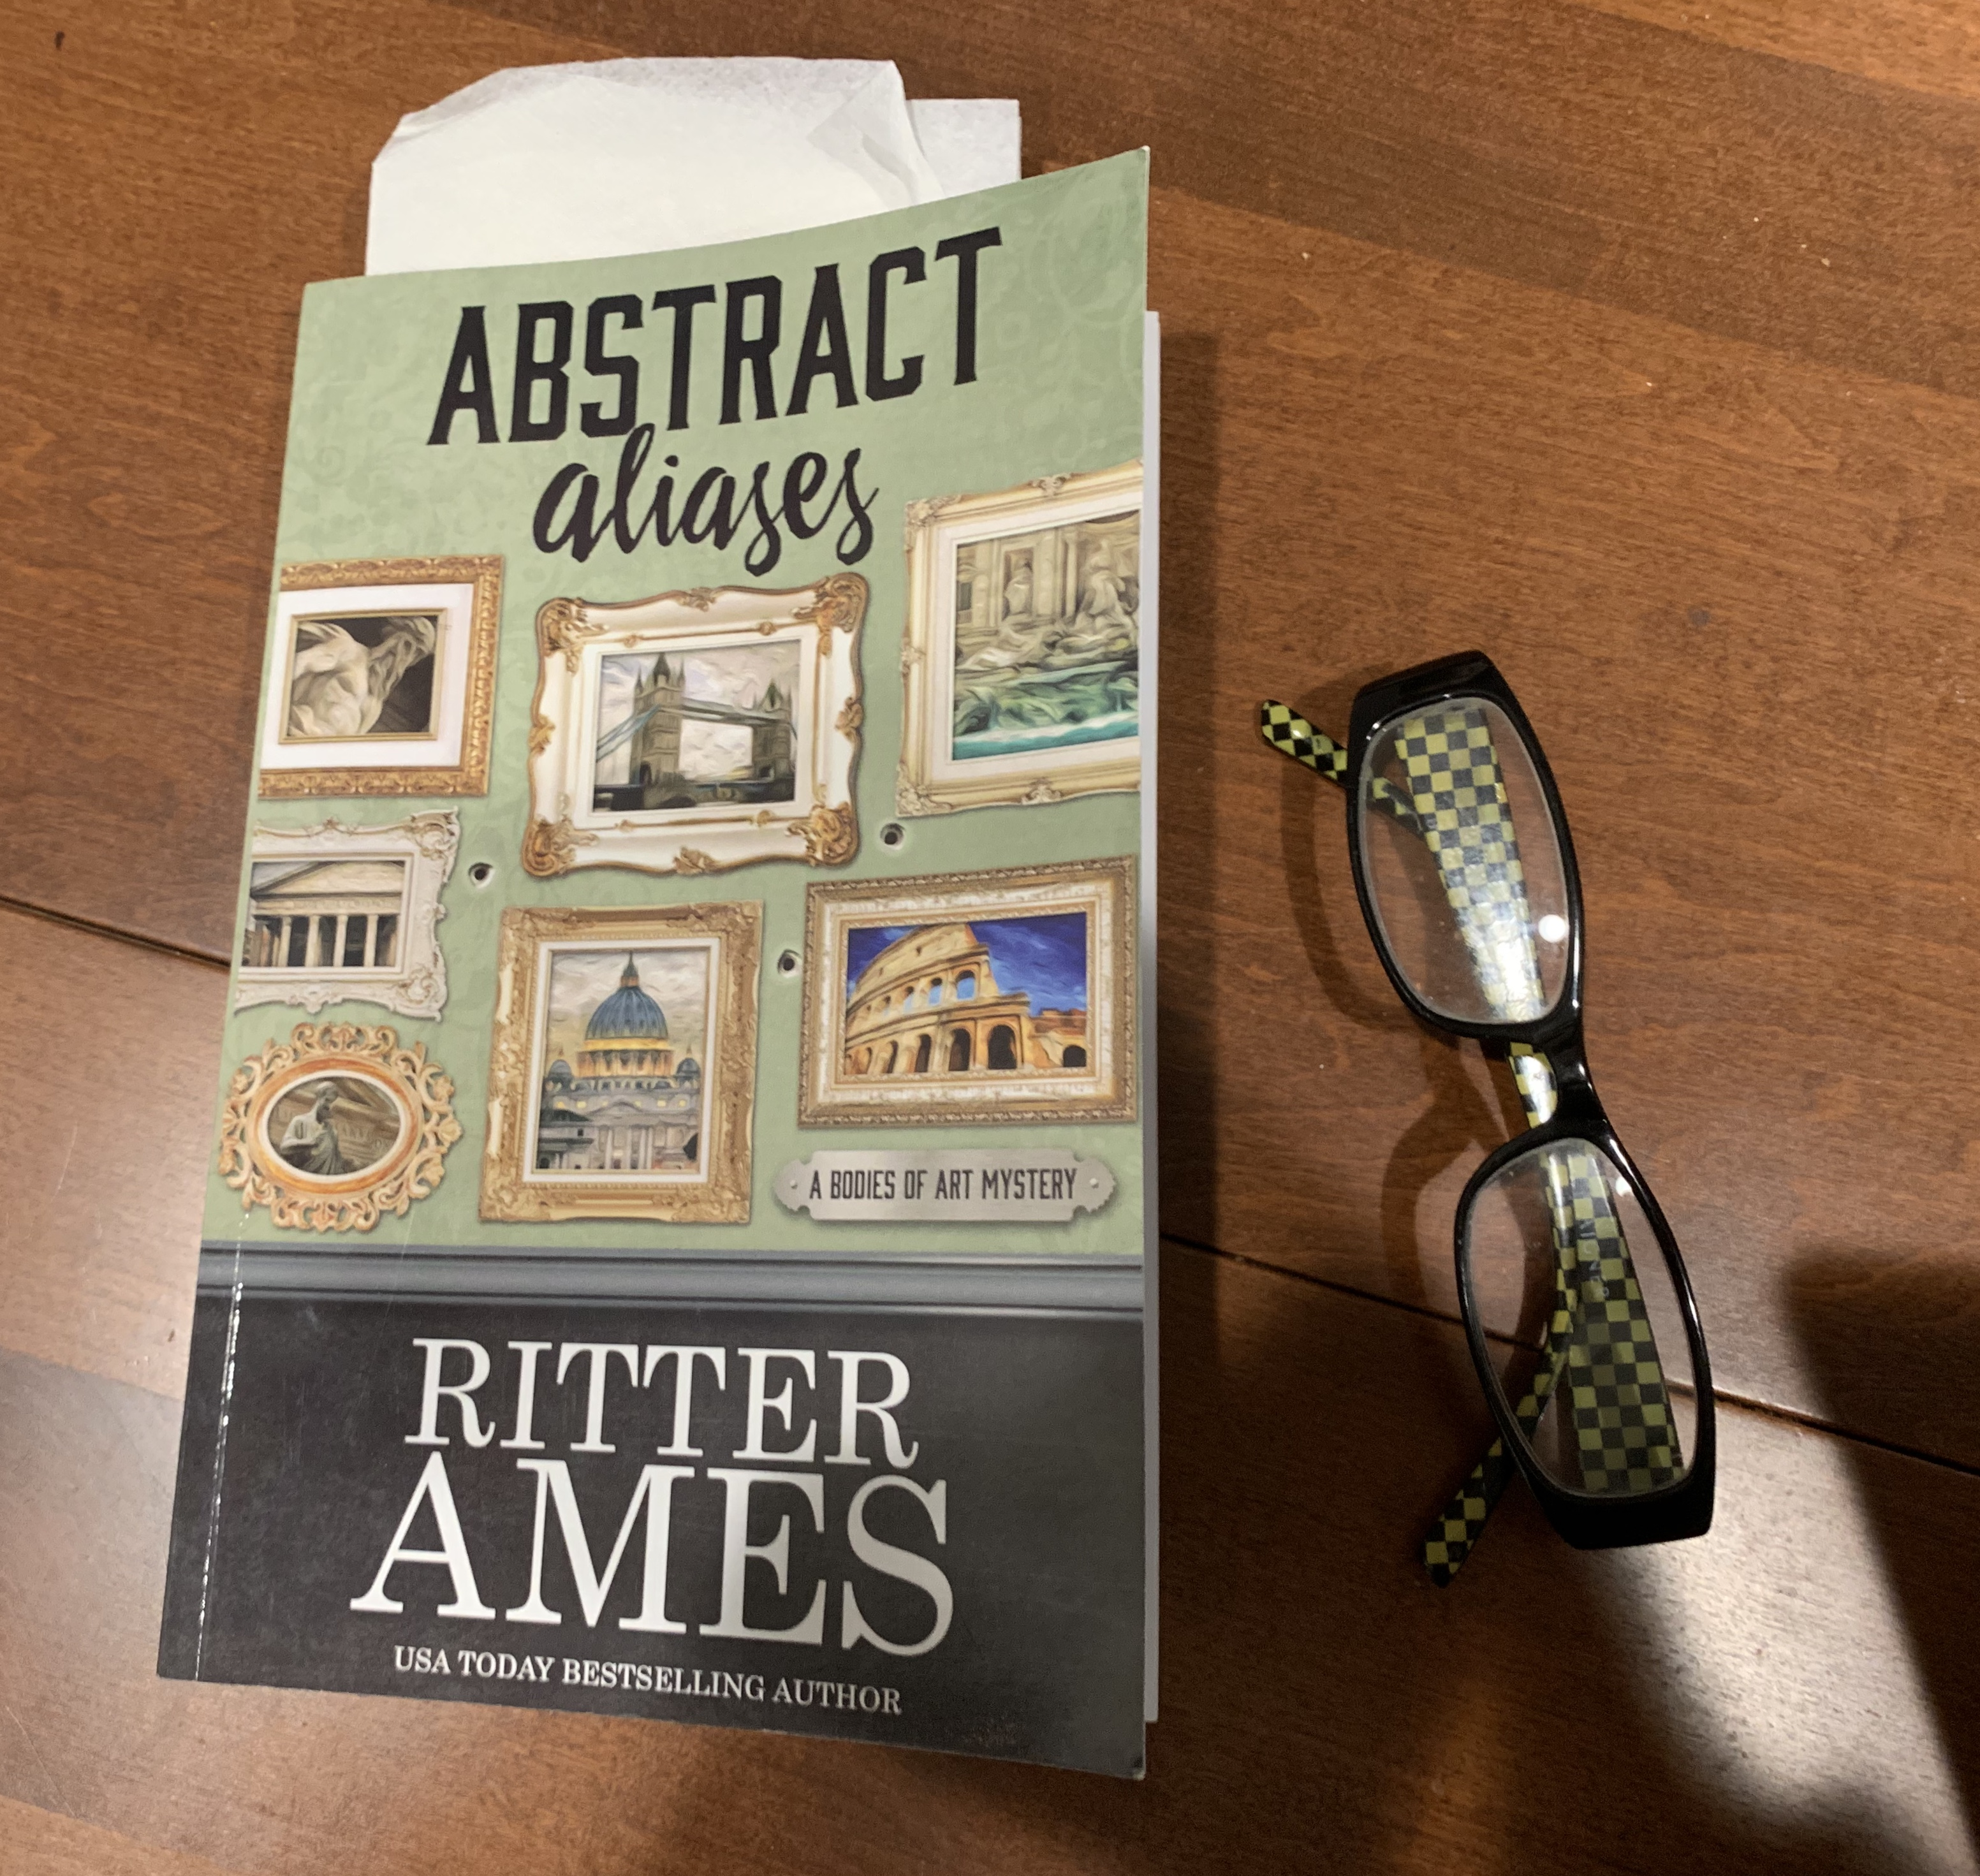 My paperback copy of Astract Aliases by Ritter Ames  Ritter's site page with links to all available vendors & versions ( paper, hard cover, ebook - Amazon, Kobo, B&N, Apple, Google )  https://ritterames.com/books/abstract-aliases/